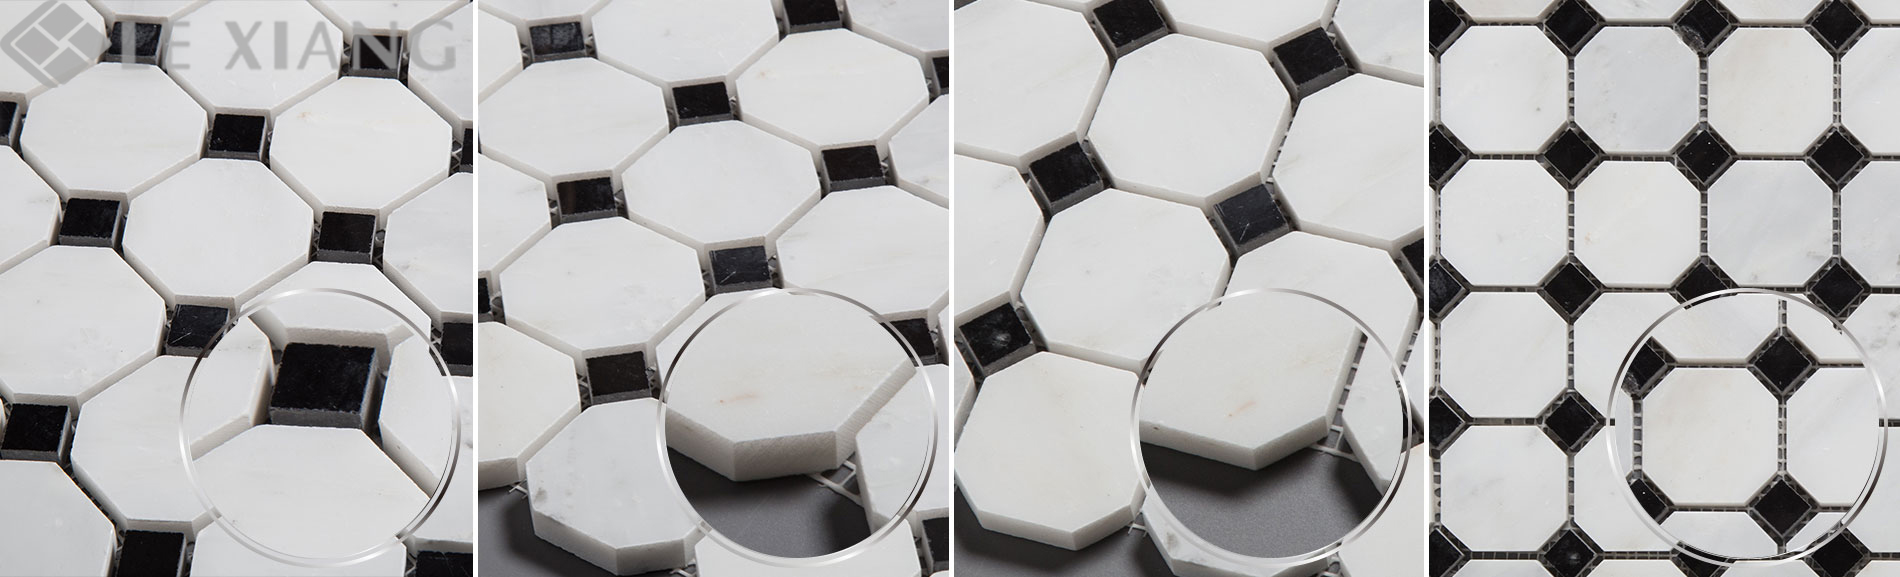 Statuary-White-Marble-Octagon-Mosaic-Tile-For-Bothroom-Floors-7